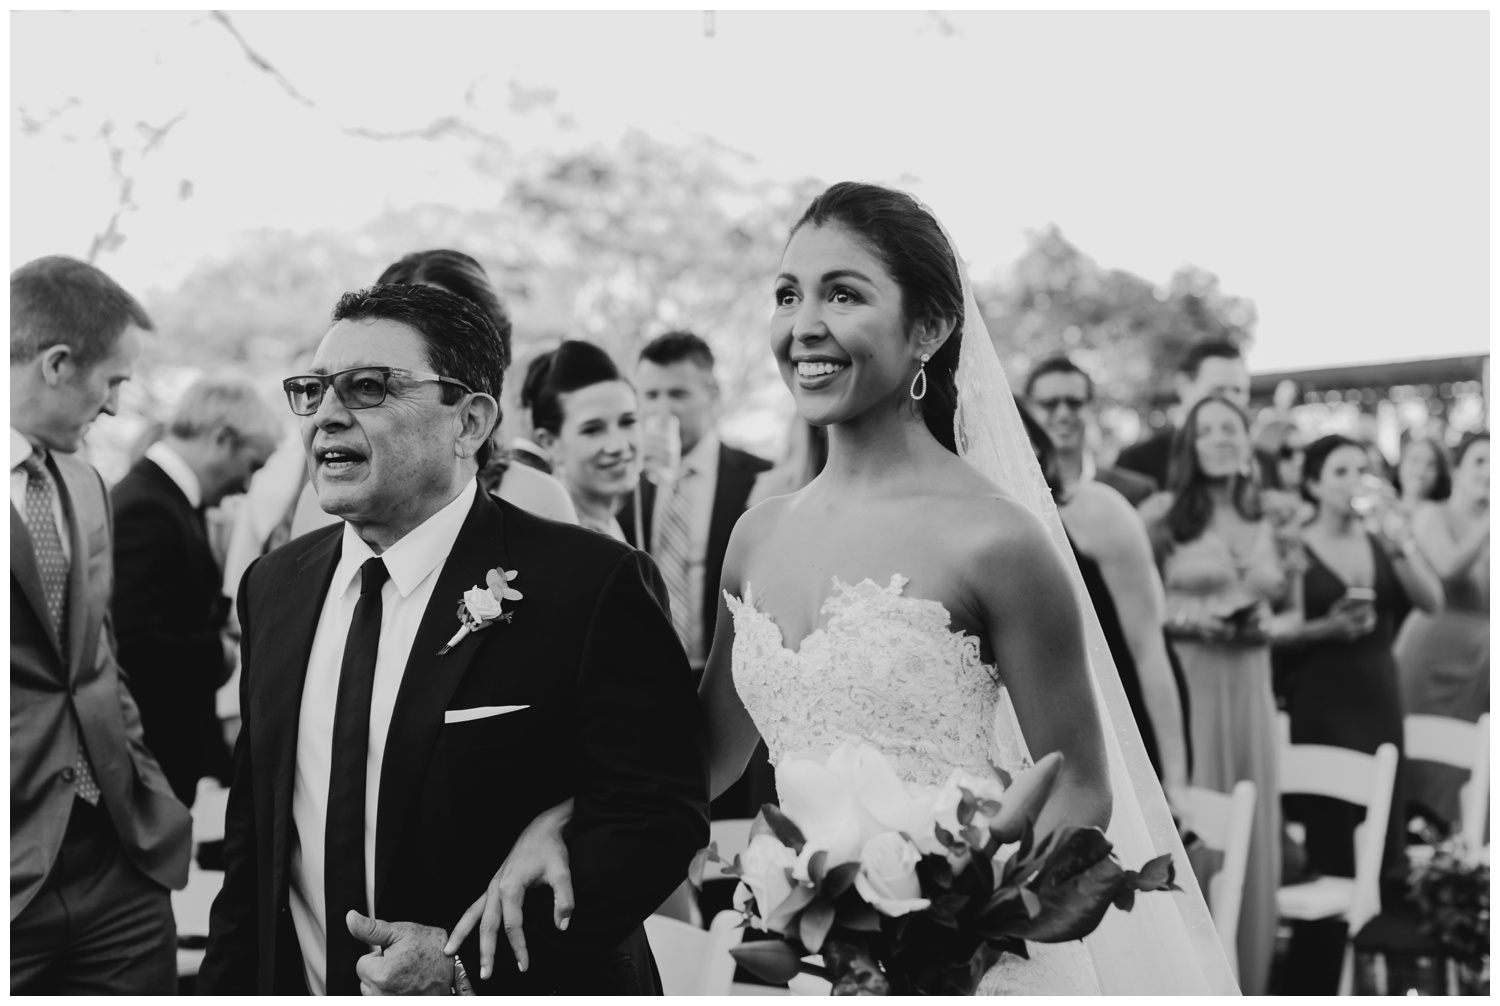 adriana_rivera_miranda_weddings_el_salvador_13.jpg